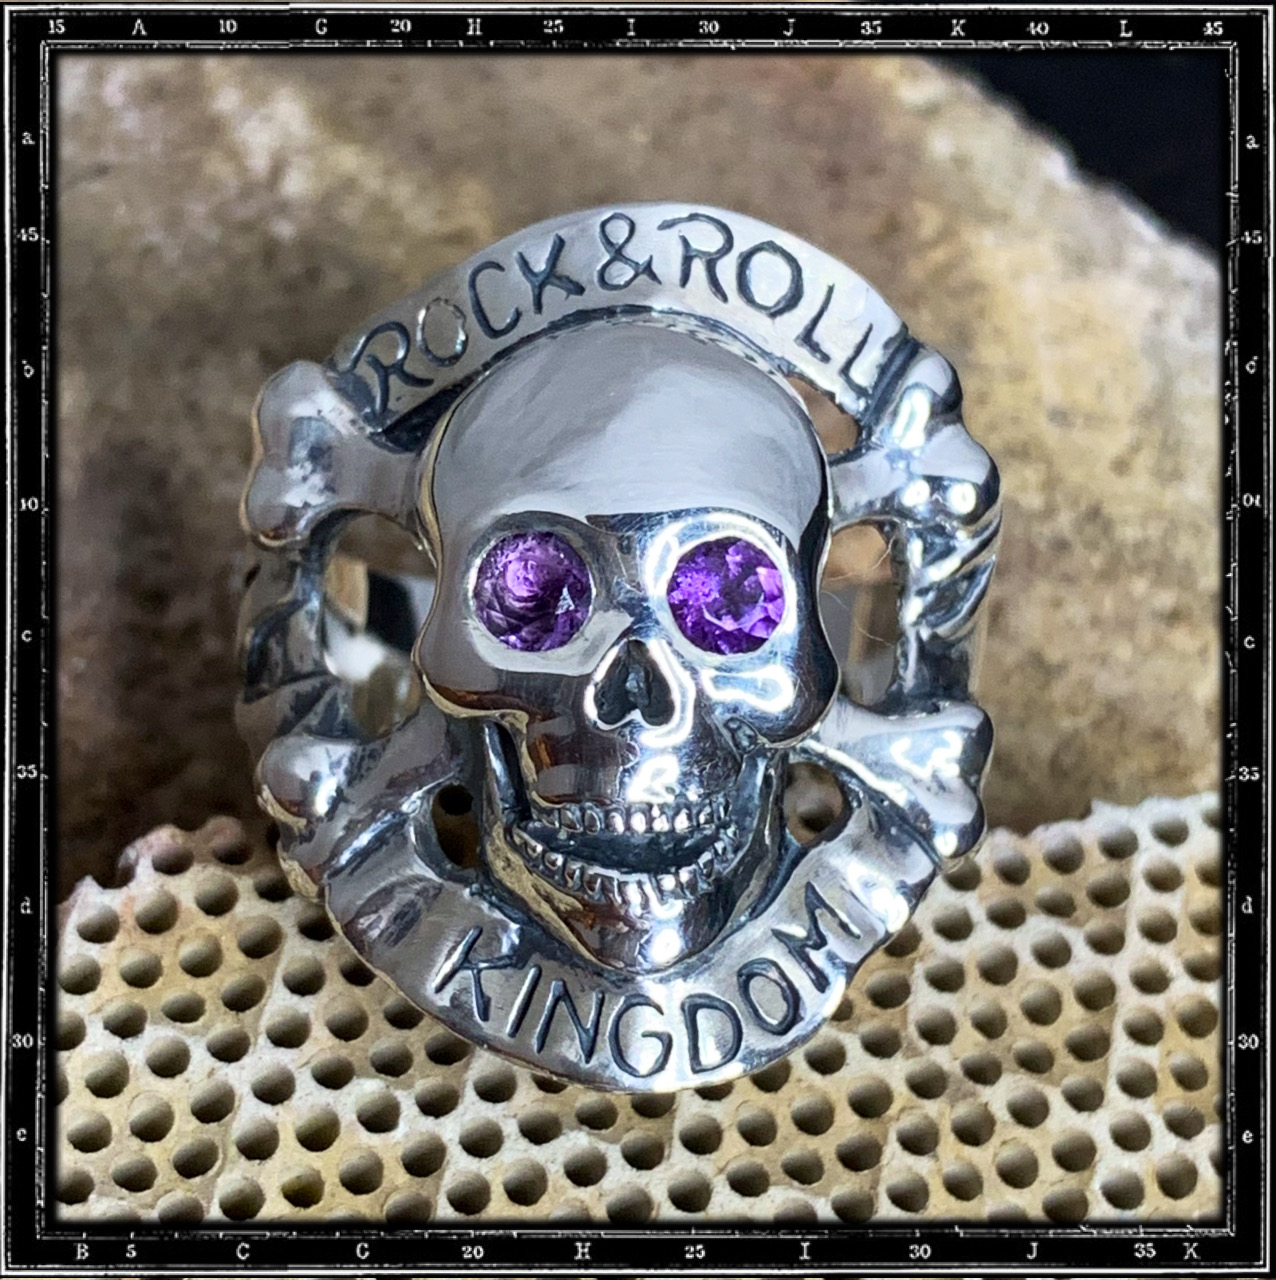 MAD3 ROCK 'N' ROLL KINGDOM RING